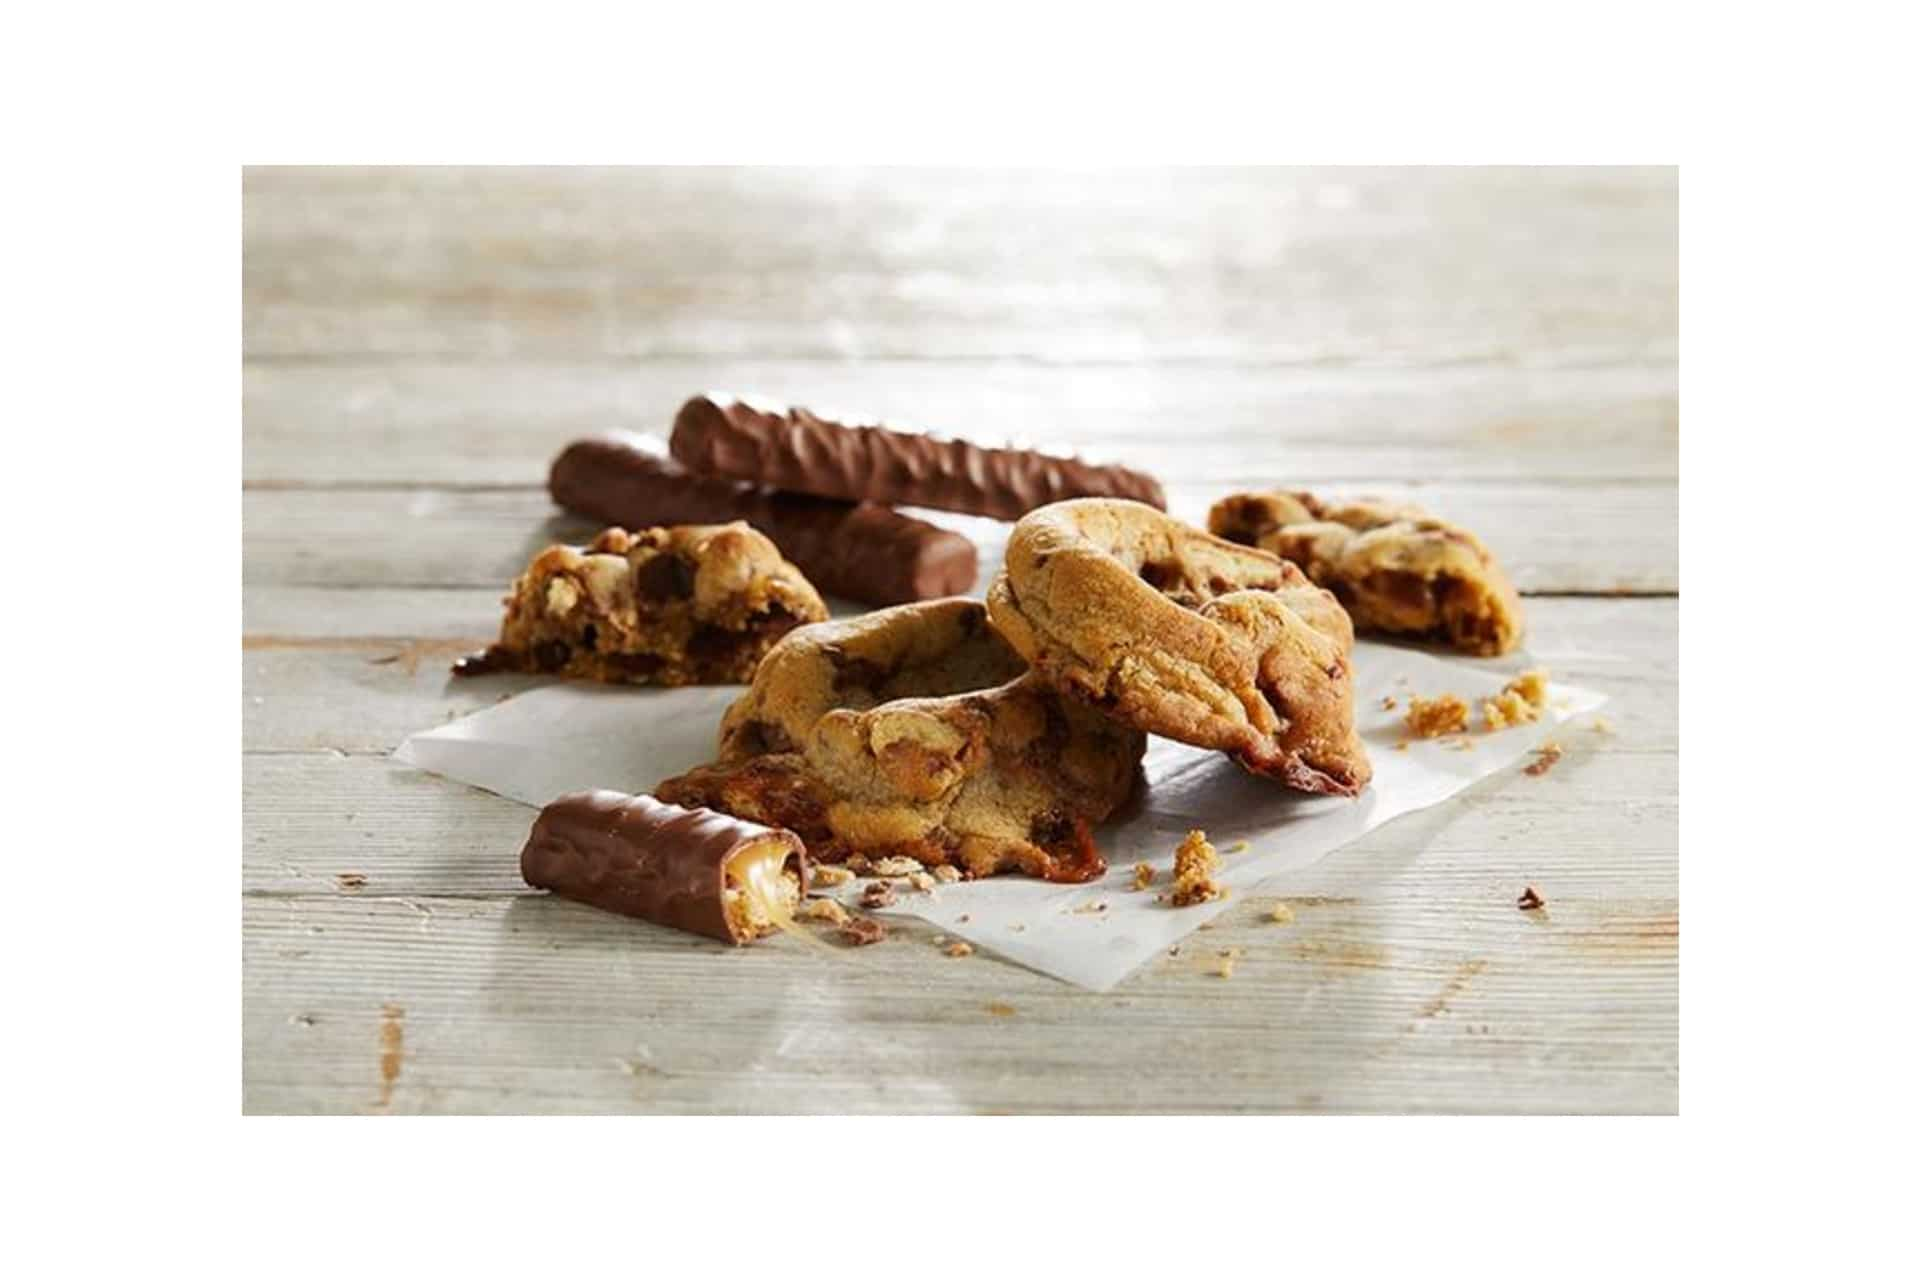 pile of homemade cookies with Twix bars